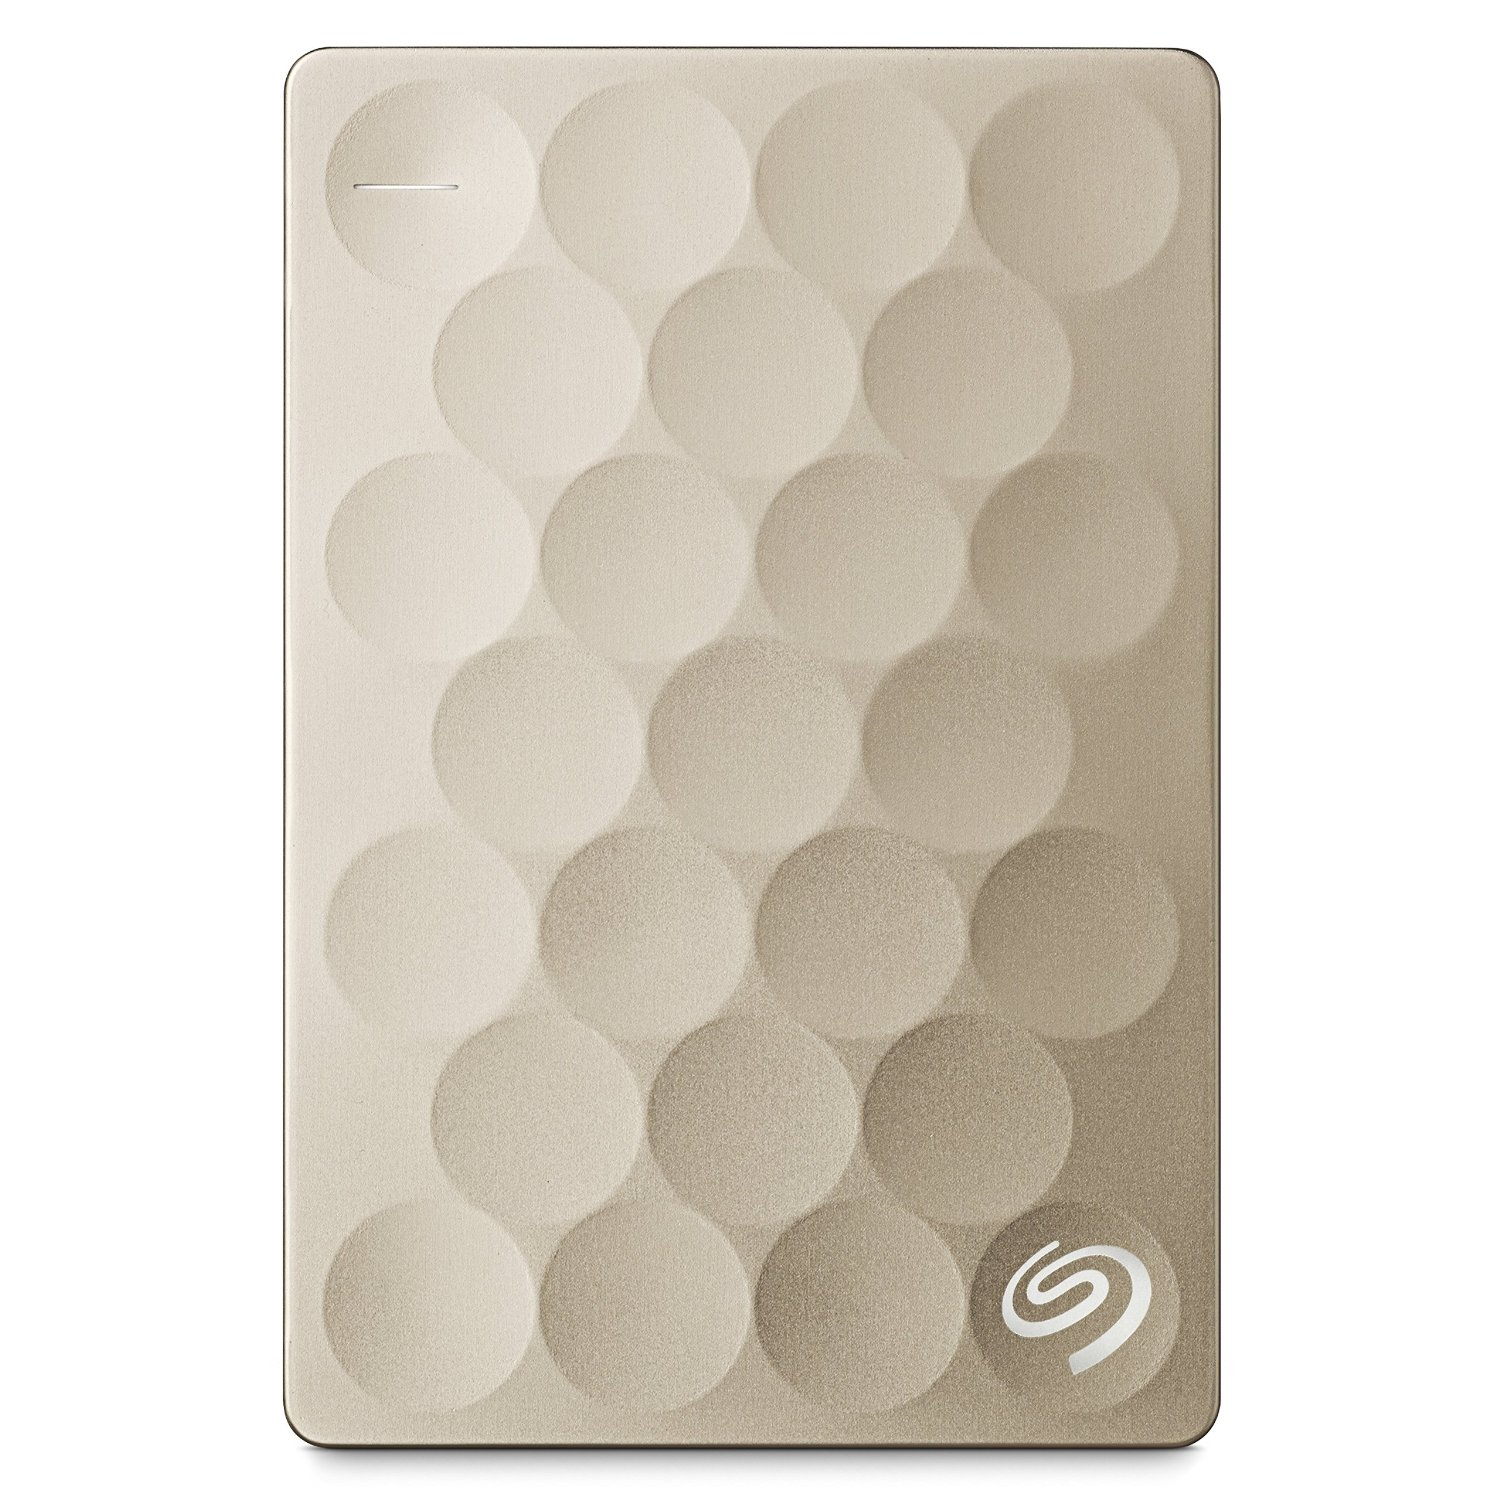 [State Bank send package] Seagate mobile hard disk 1tb slim slim9.6mmusb3.0 high-speed 1t mobile disk